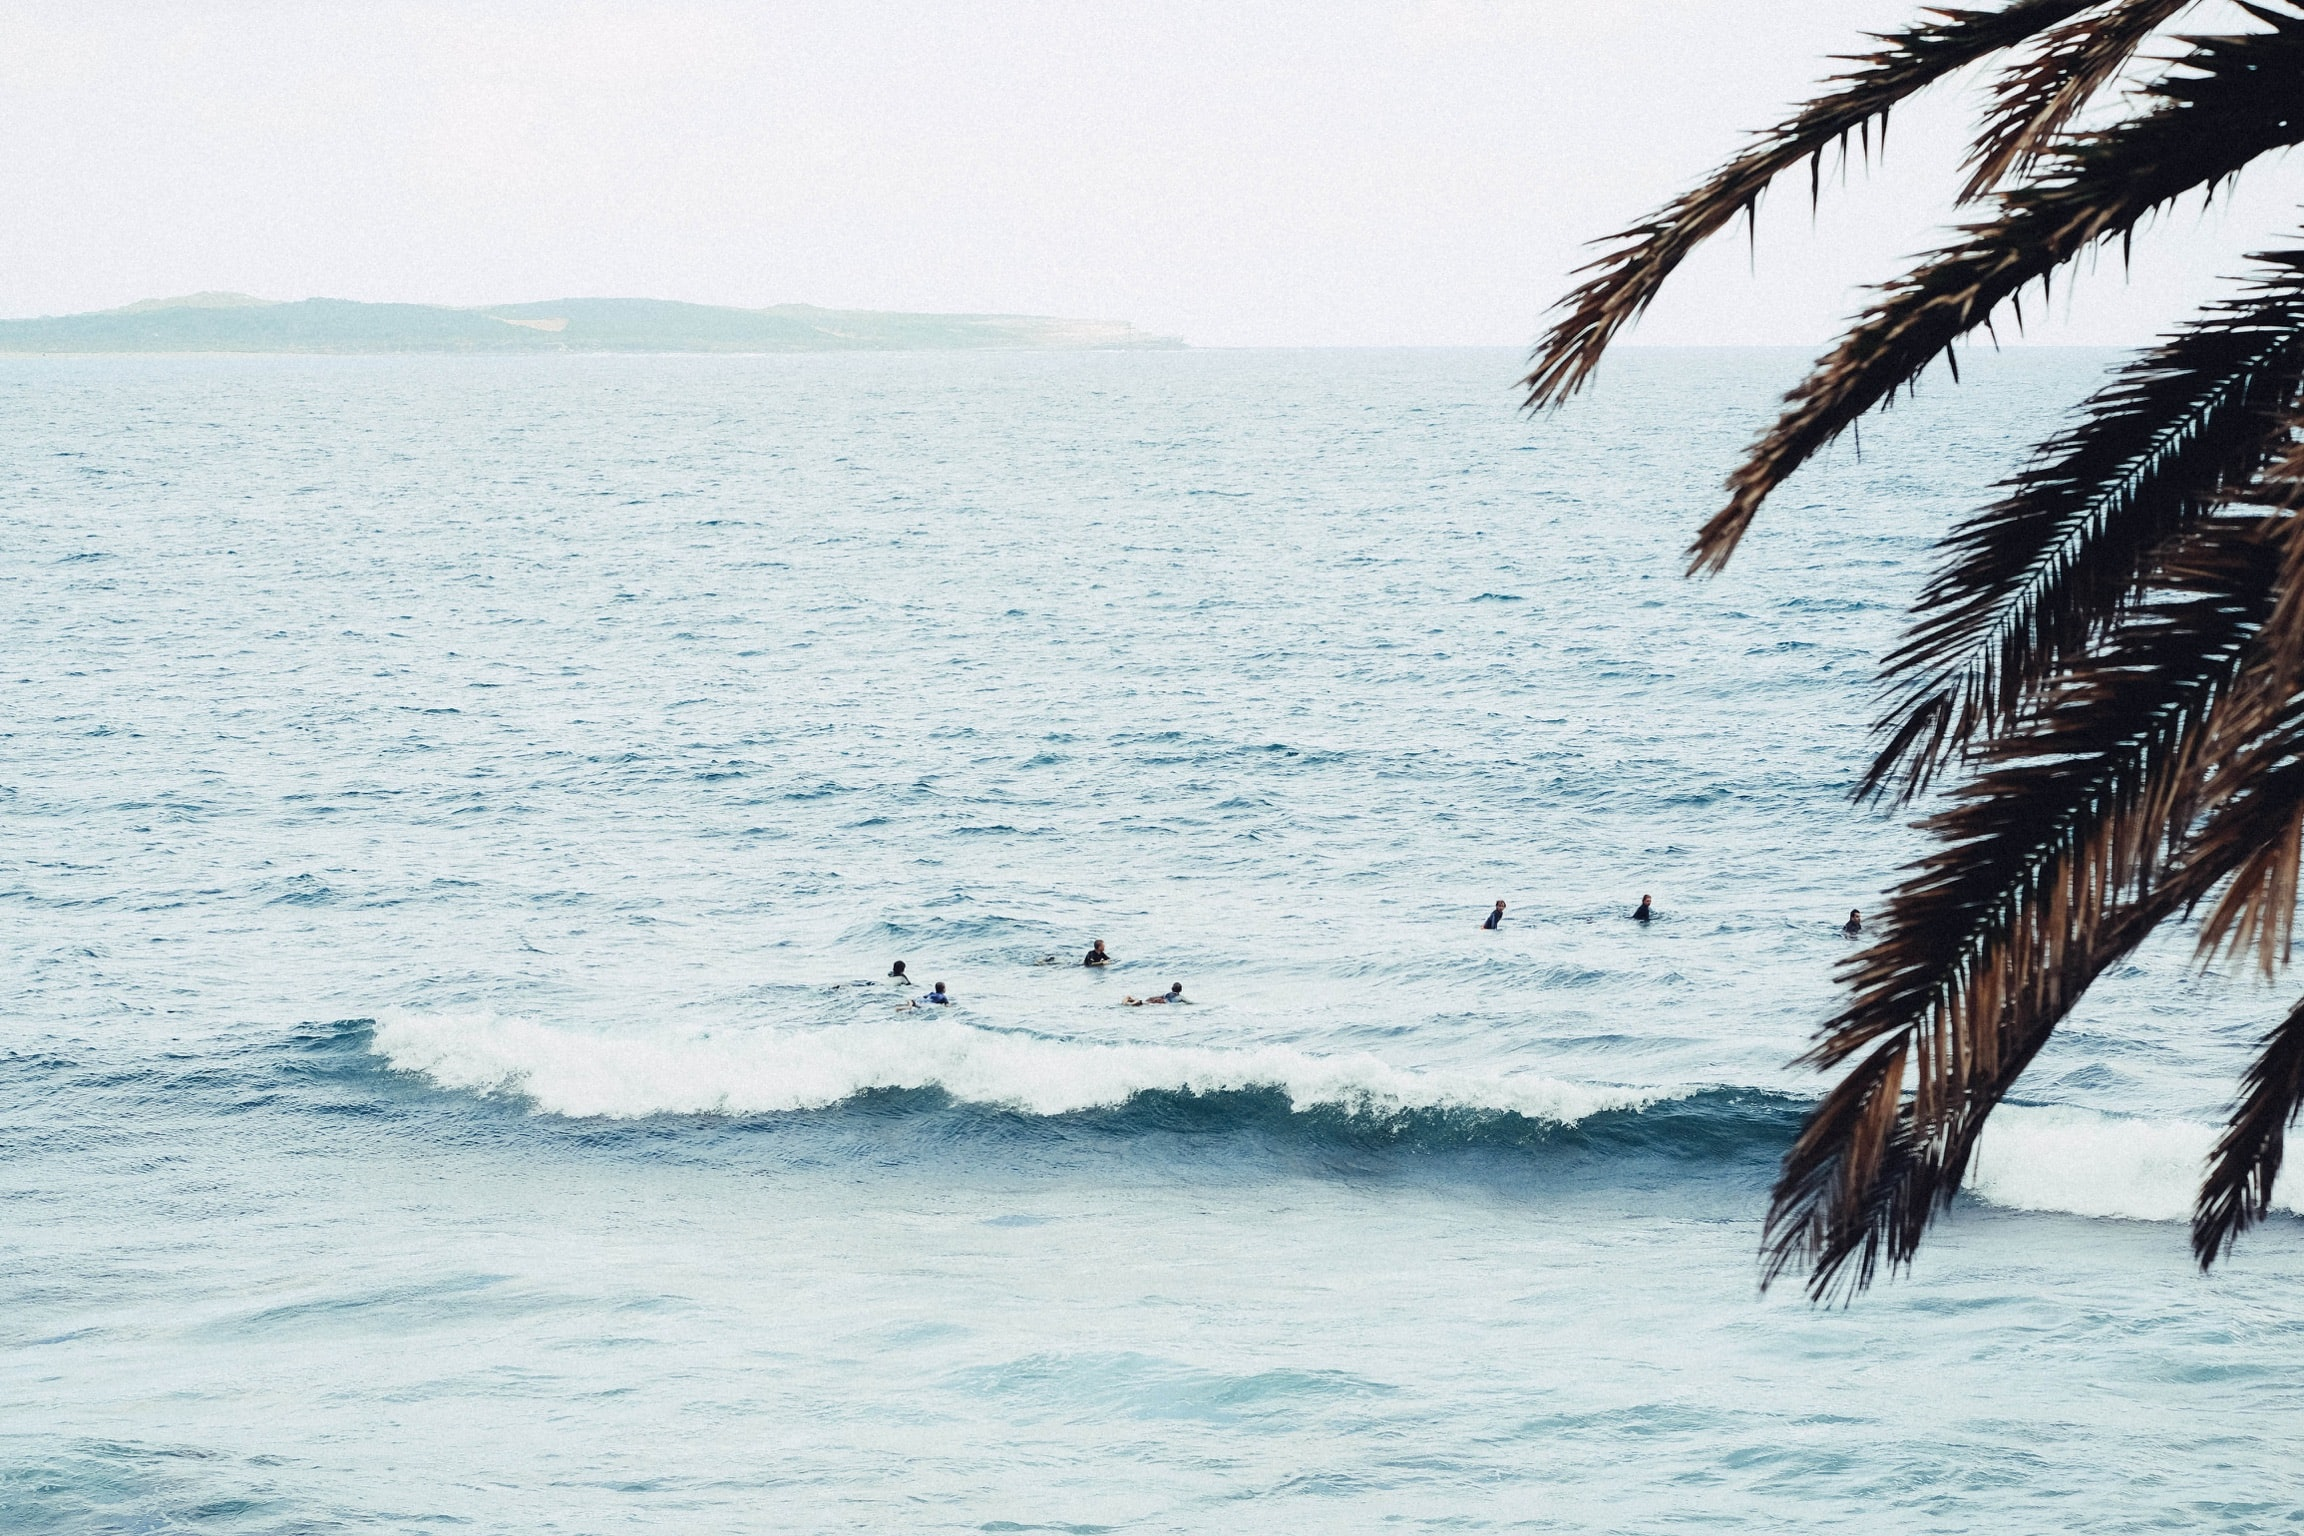 Surfers floating in the ocean at the beach in Australia